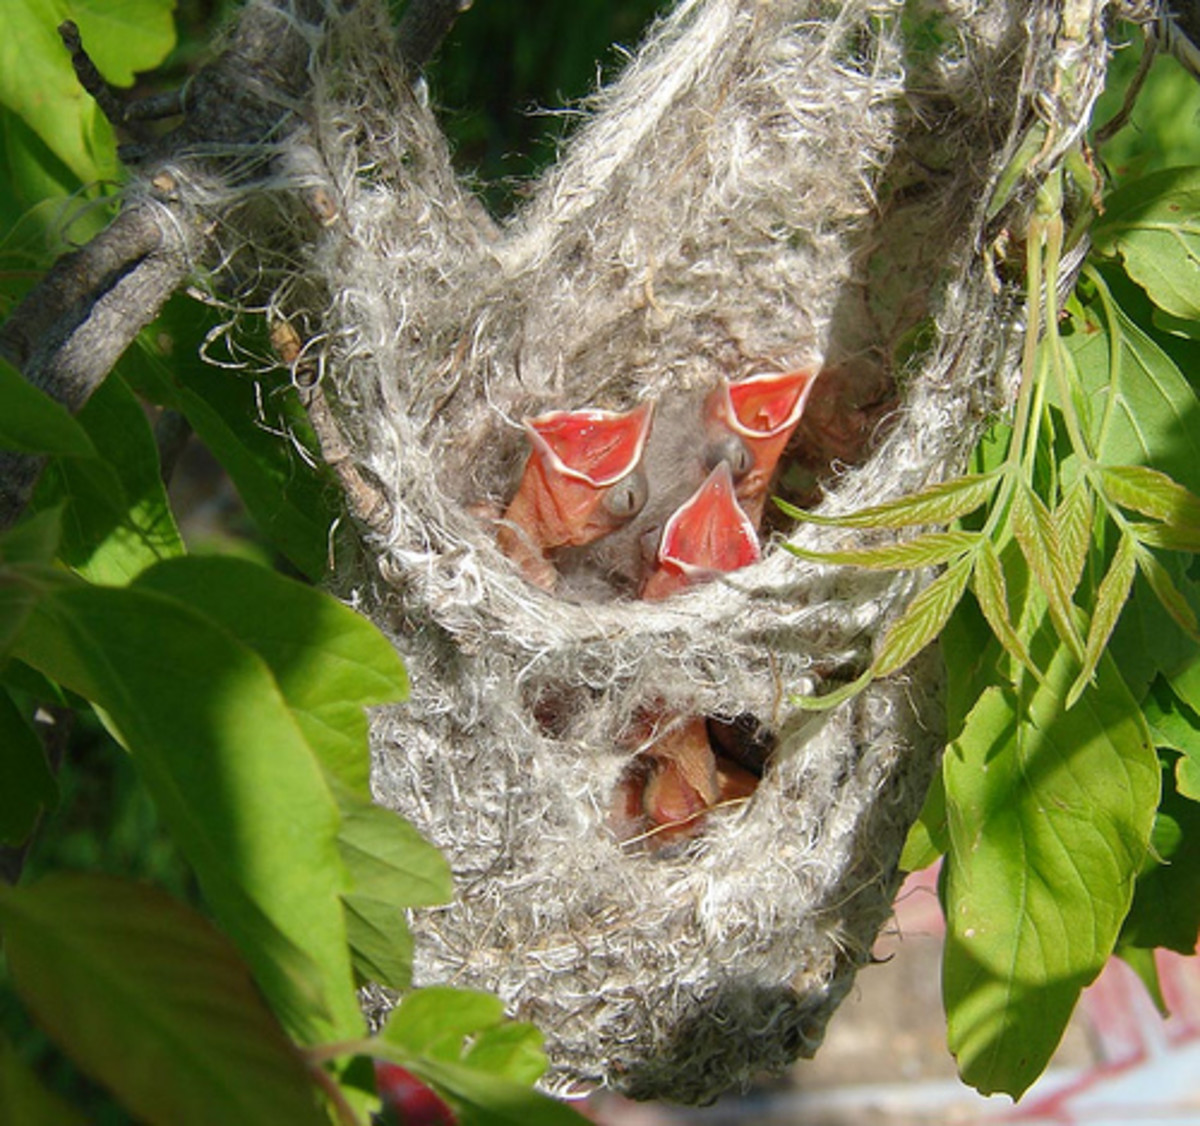 A female oriole will build a type of hanging basket nest for her eggs by weaving grass and plant fibers together.